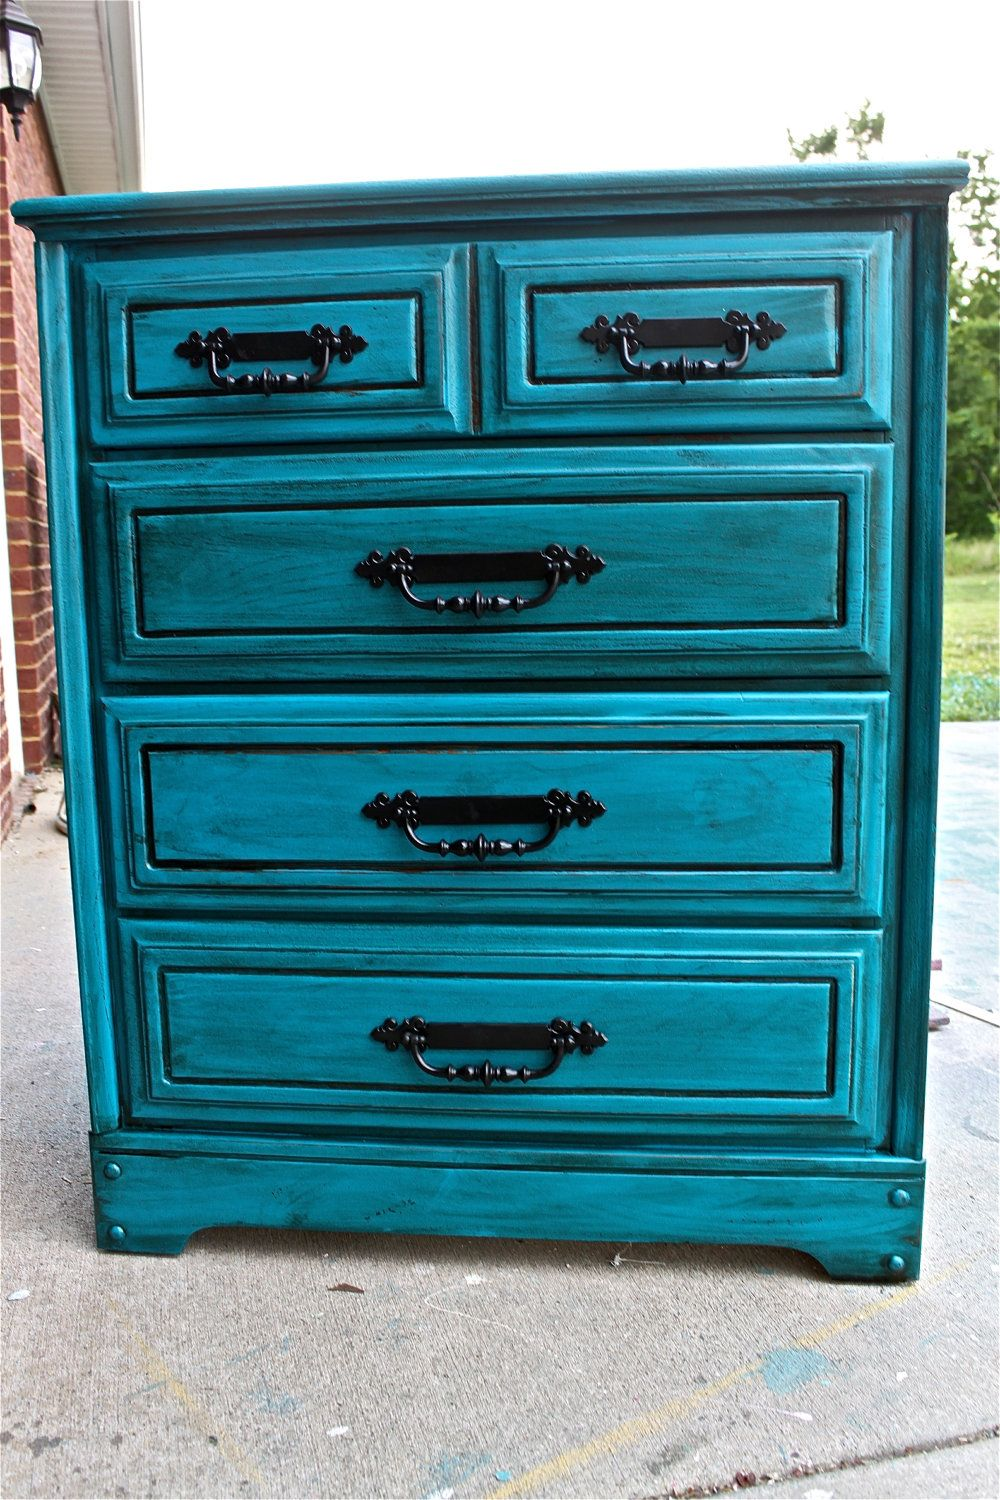 Staining Bedroom Furniture Stain On Regular Paint Makes The Coolest Effect That Color Is